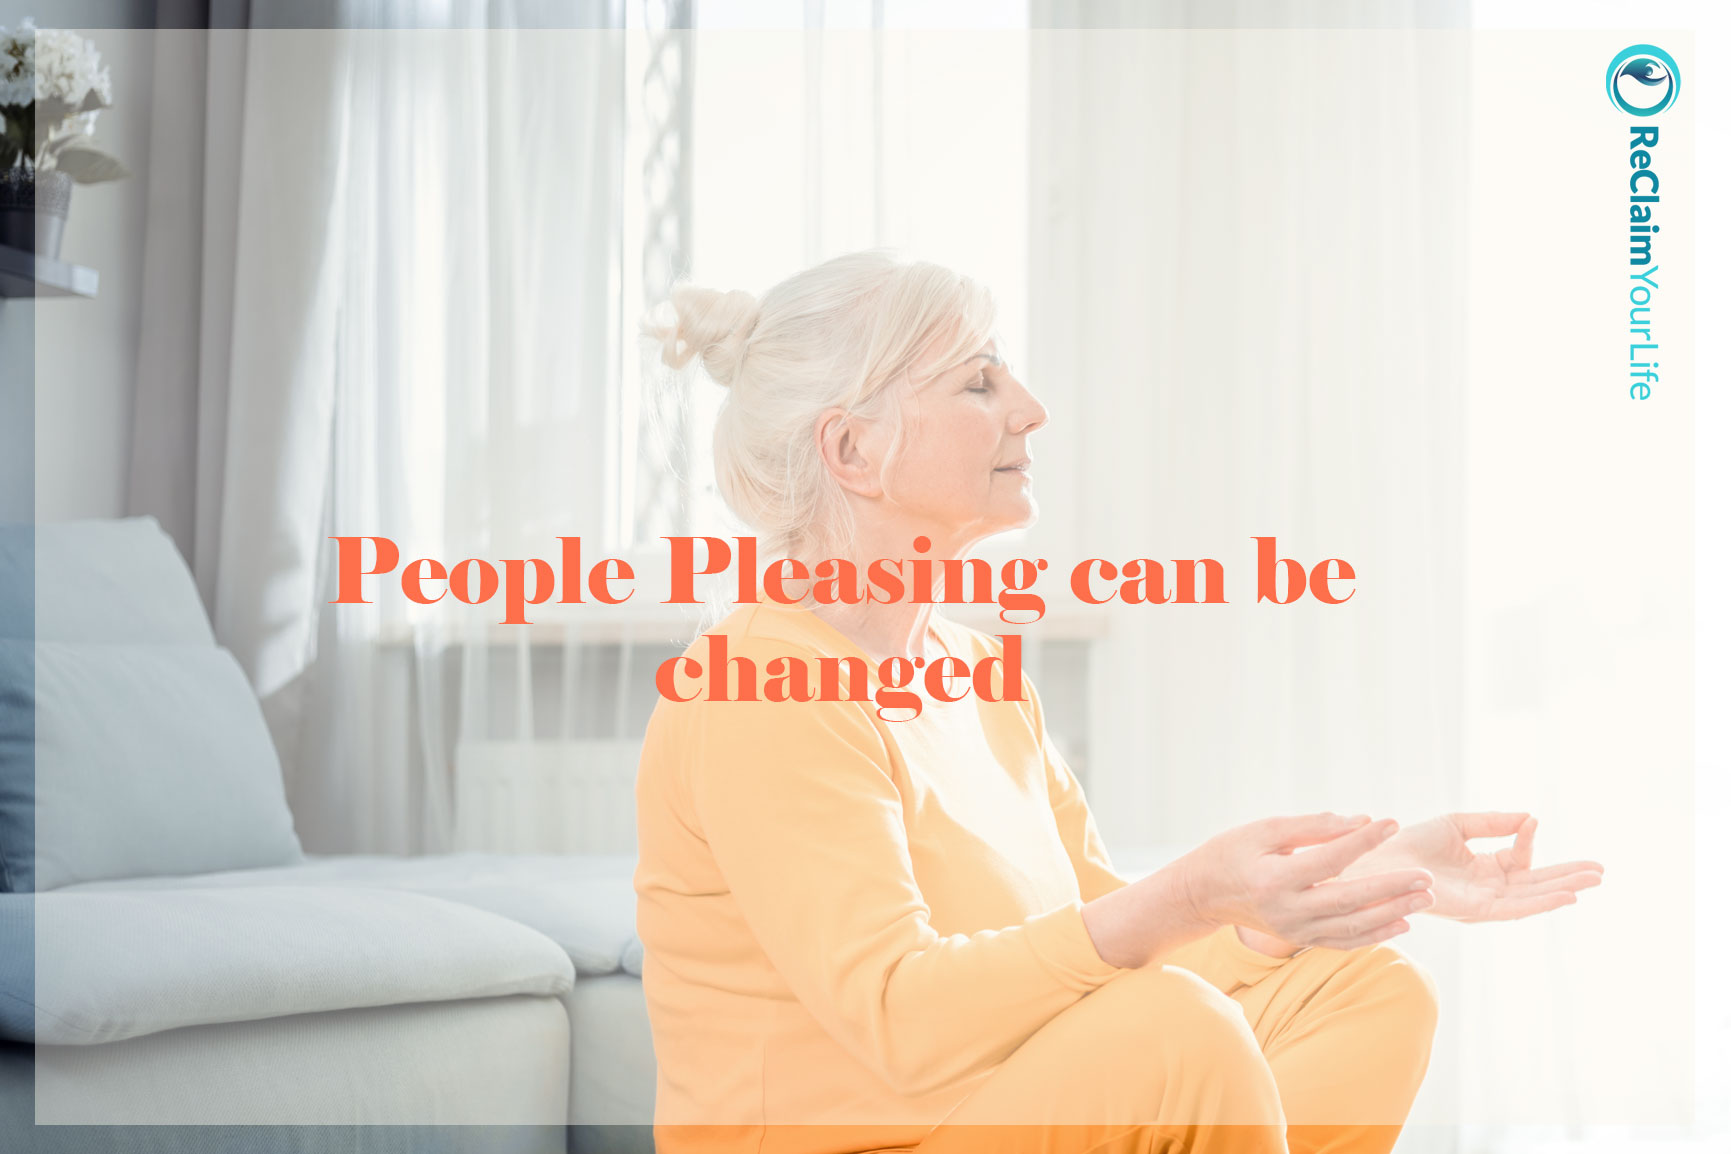 People pleasing can be changed